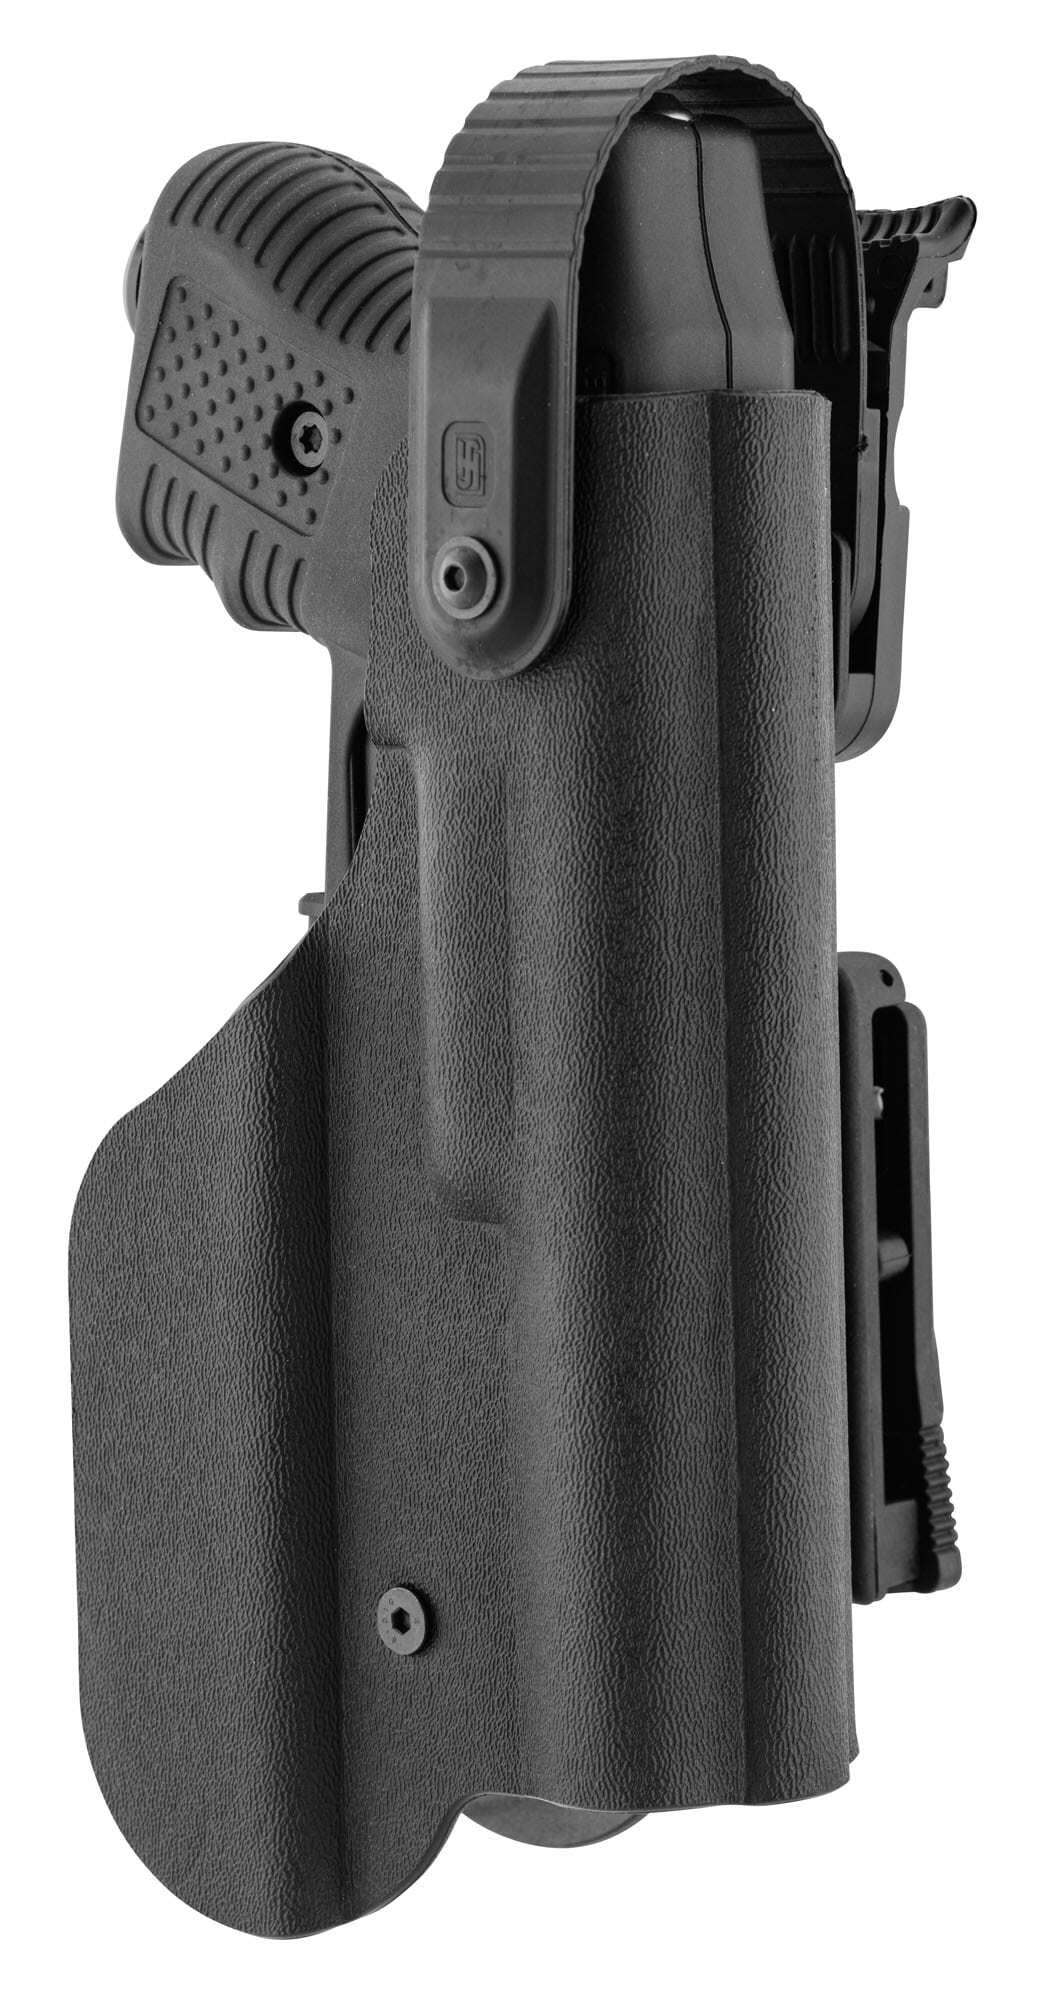 JPX390-4-Holster pour JPX - Kydex Paladin II avec lampe tactique - JPX390